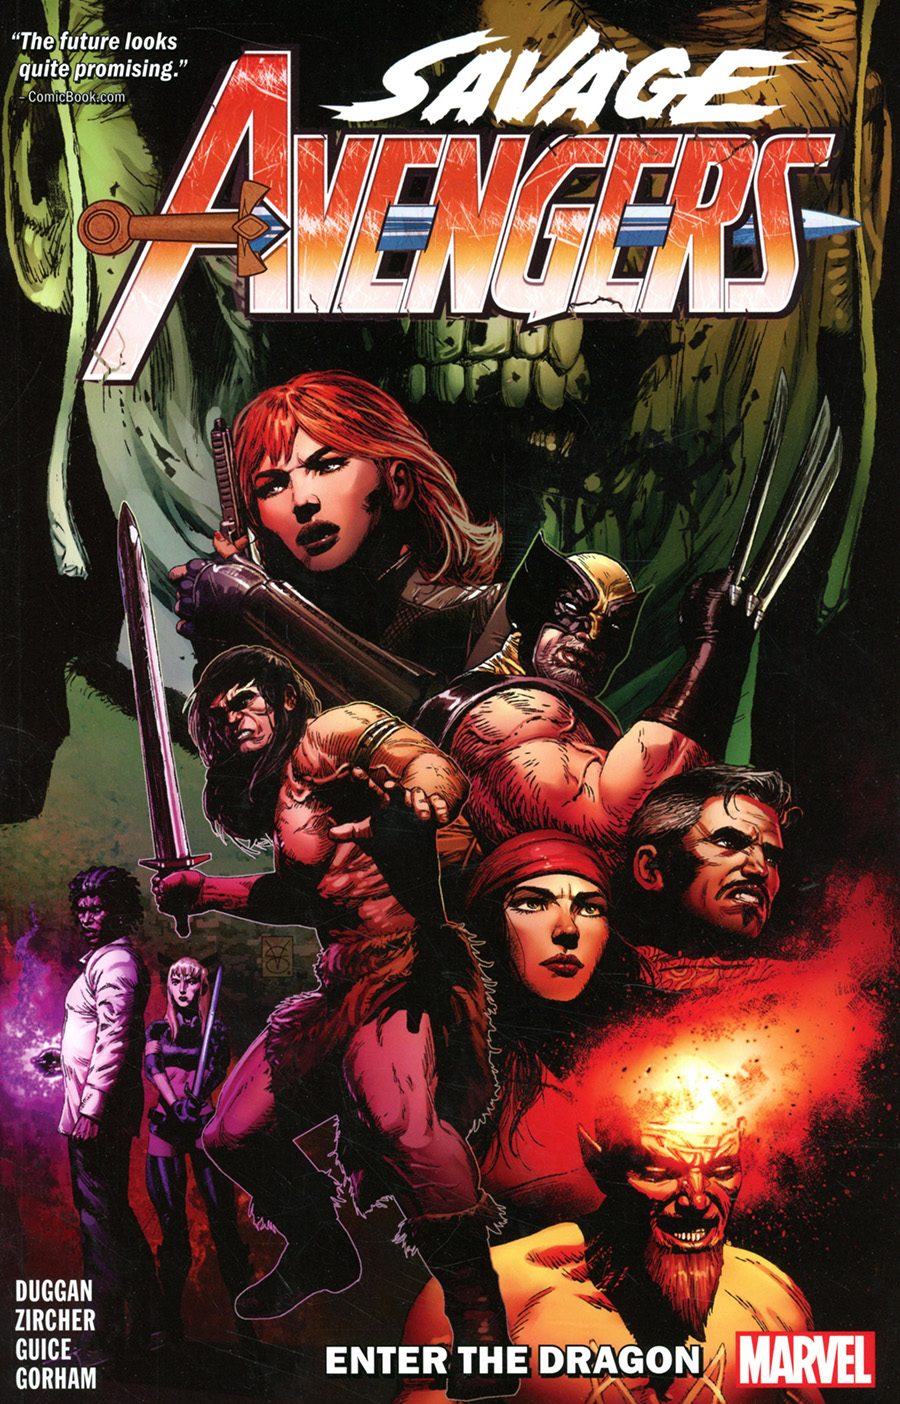 Savage Avengers Vol 3 Enter The Dragon TP